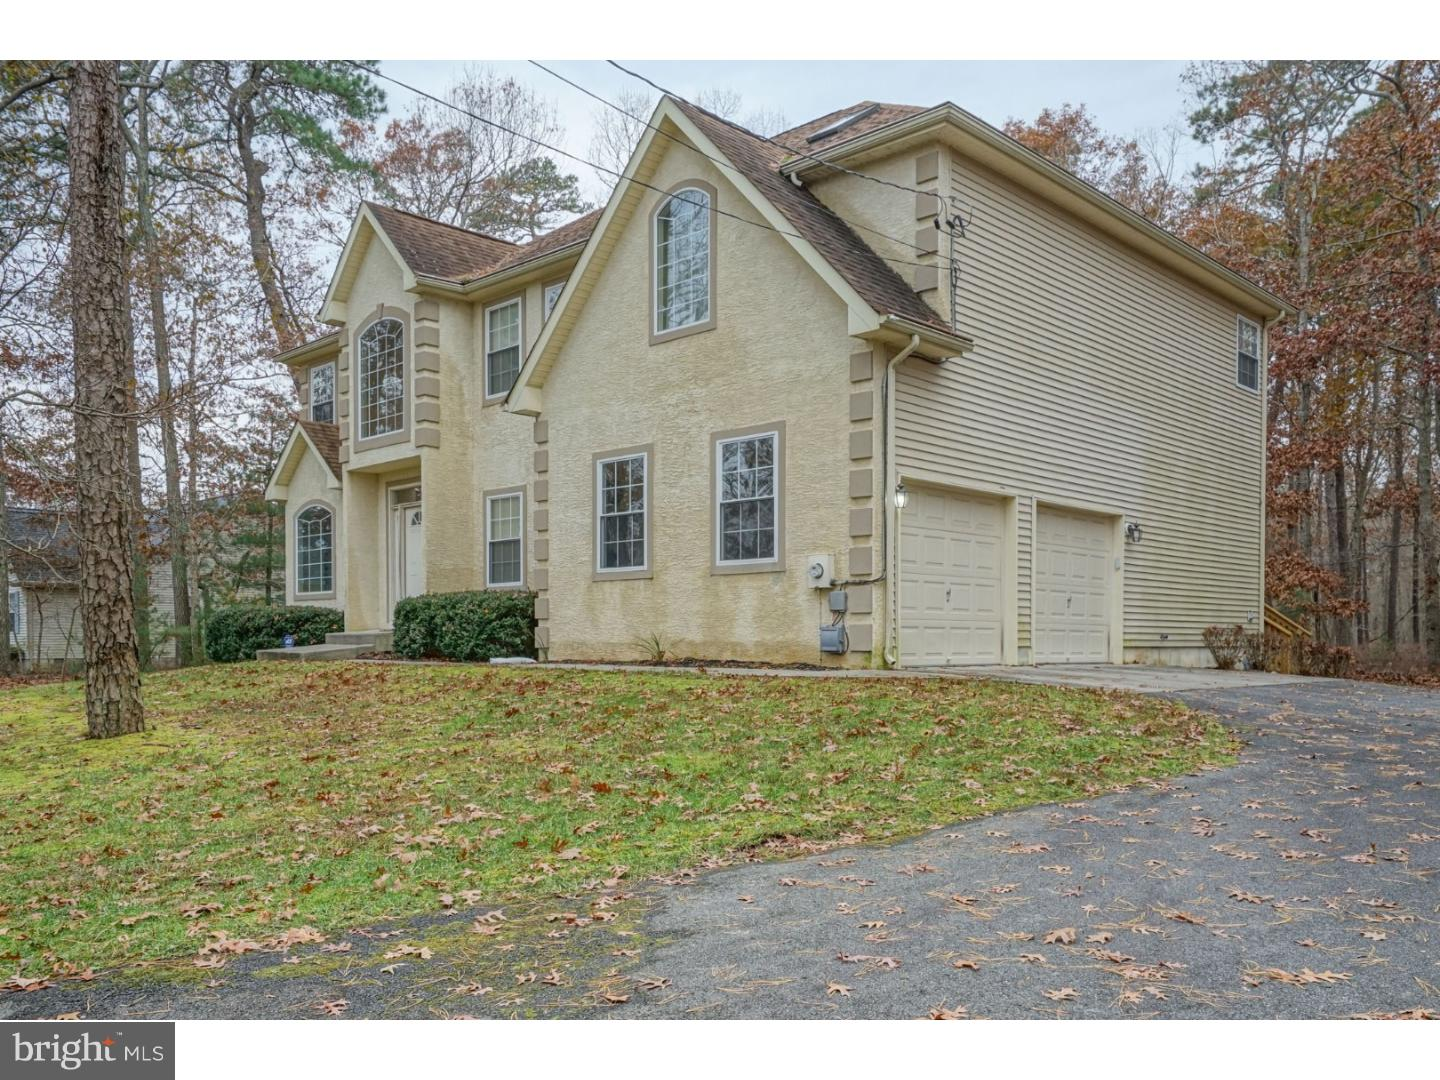 Single Family Home for Sale at 407 S 2ND Avenue Galloway, New Jersey 08205 United States